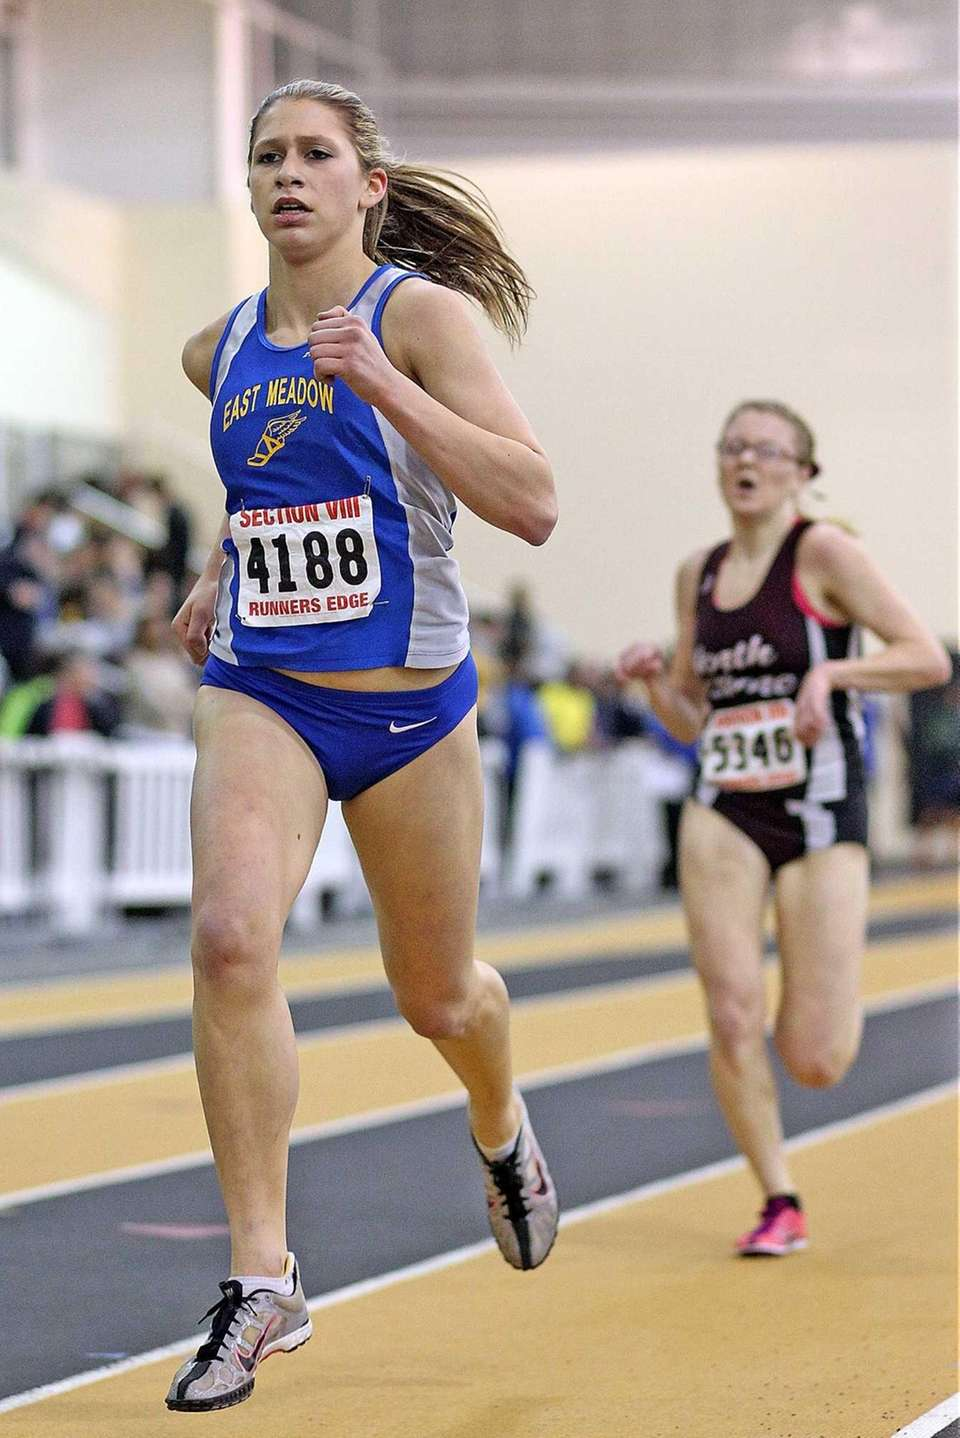 East Meadow's Amanda Ashe takes first place in